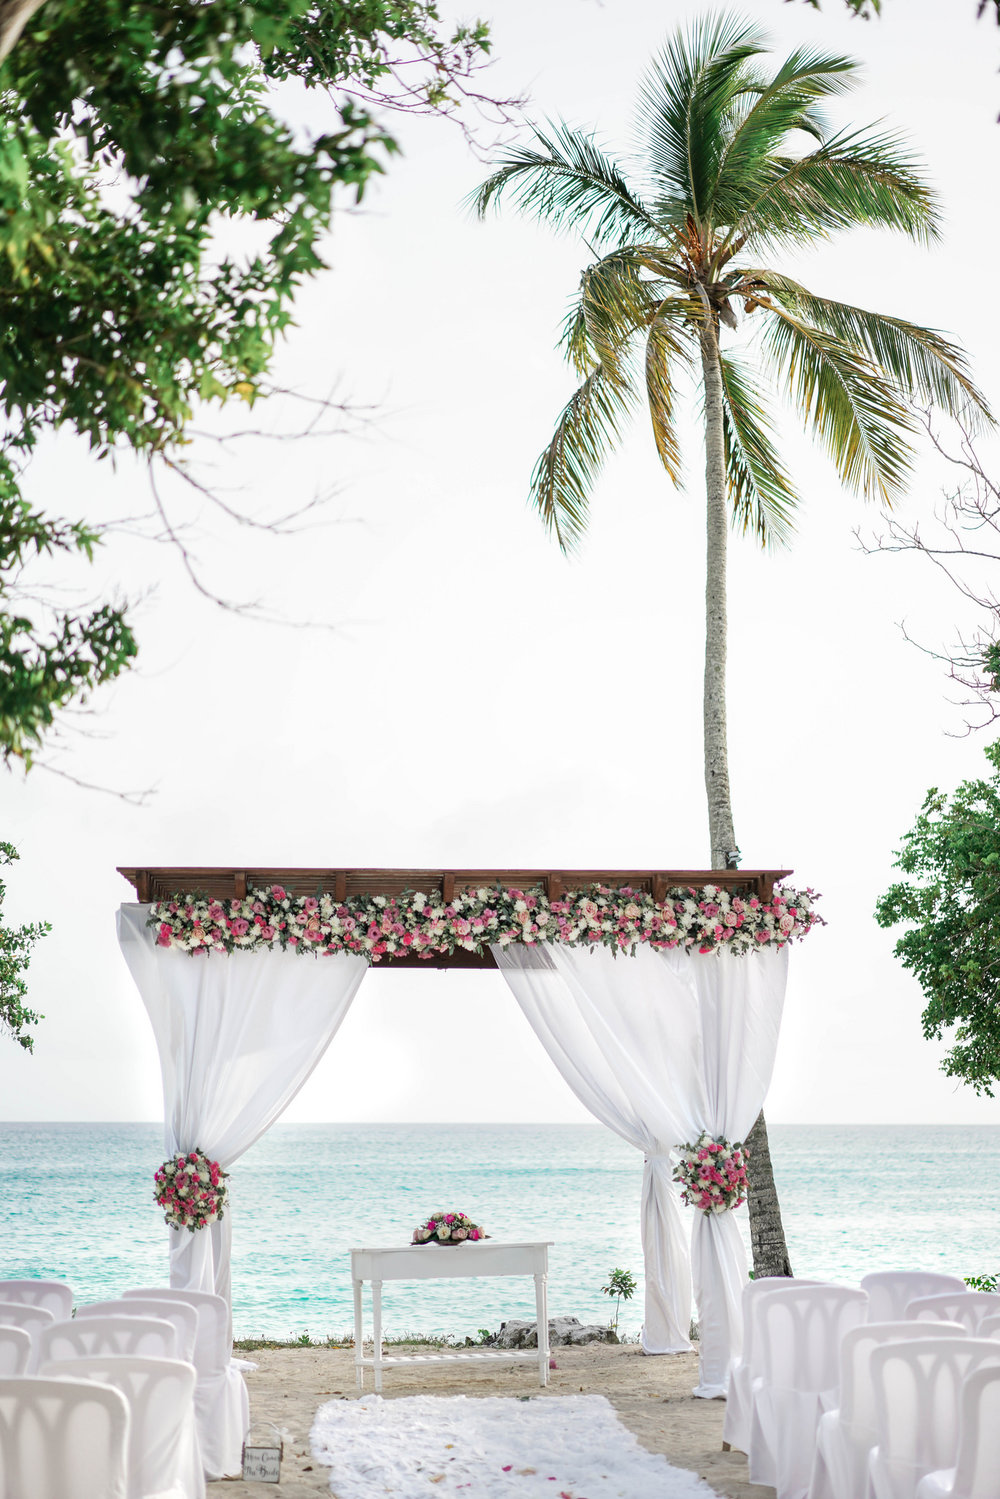 La Romana, Dominican Republic Destination Wedding. Beautiful beach wedding ceremony by a Texas destination wedding photographer.